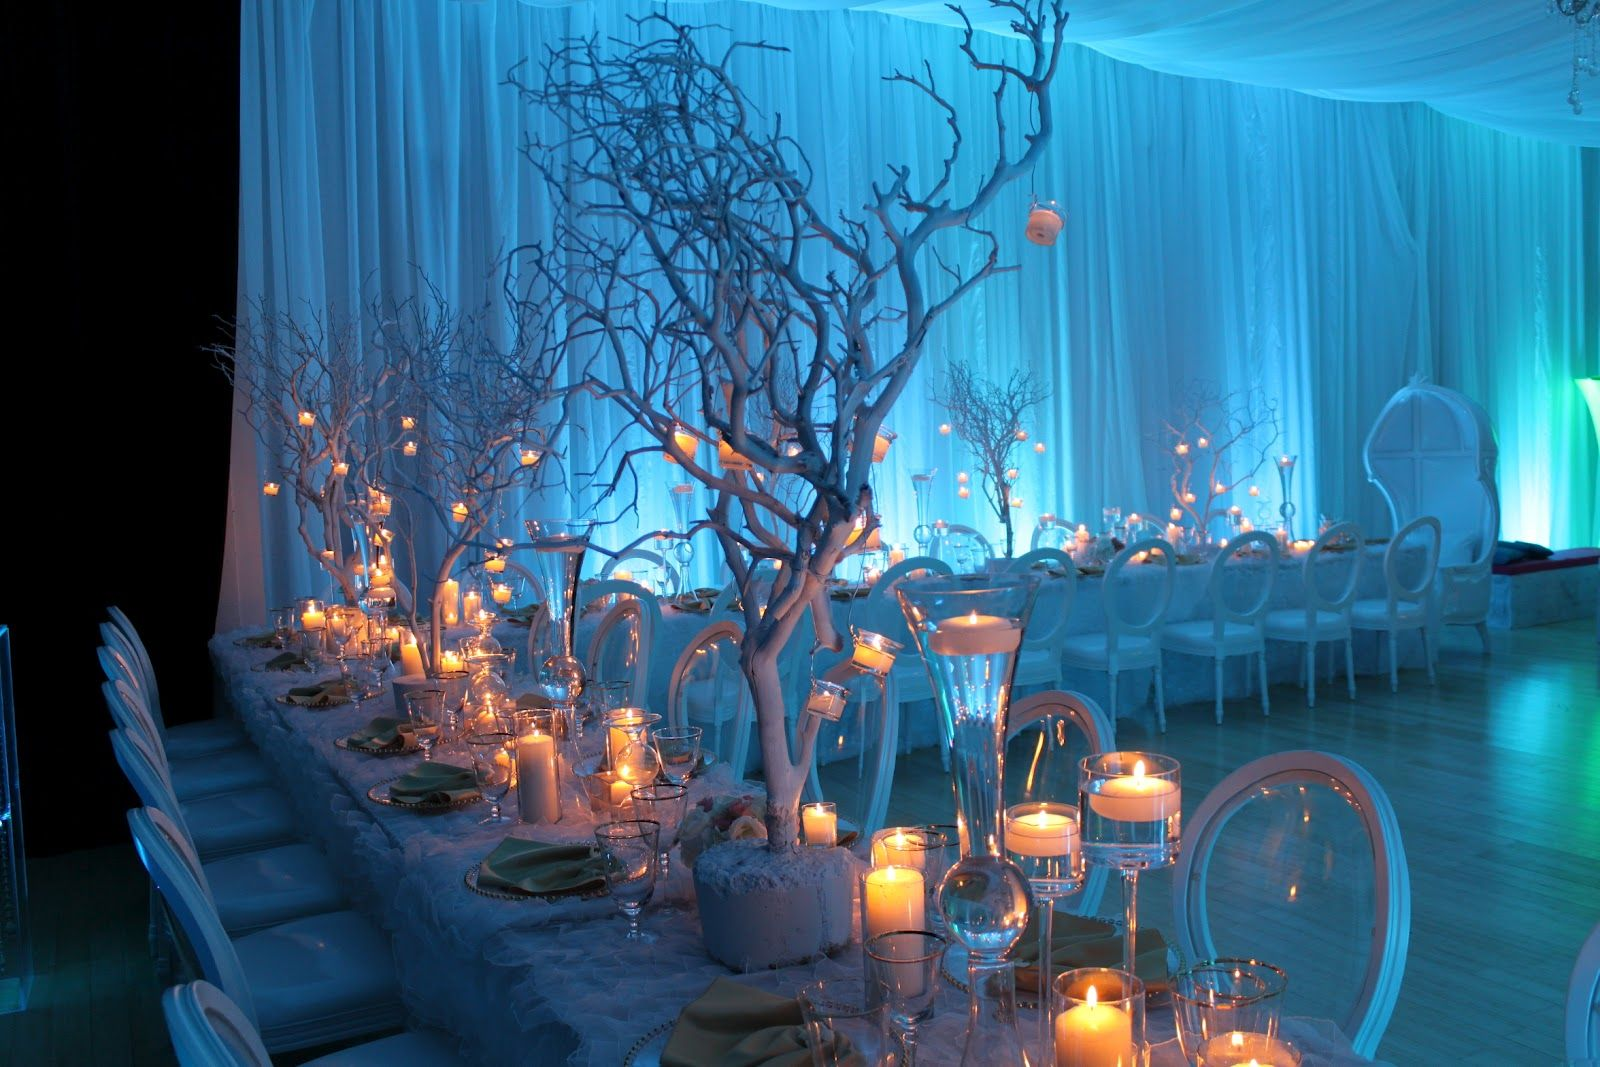 Beautiful Lighted Centerpieces for Your Wedding - http://www.weddingfanatic.com/beautiful-lighted-centerpieces-wedding/